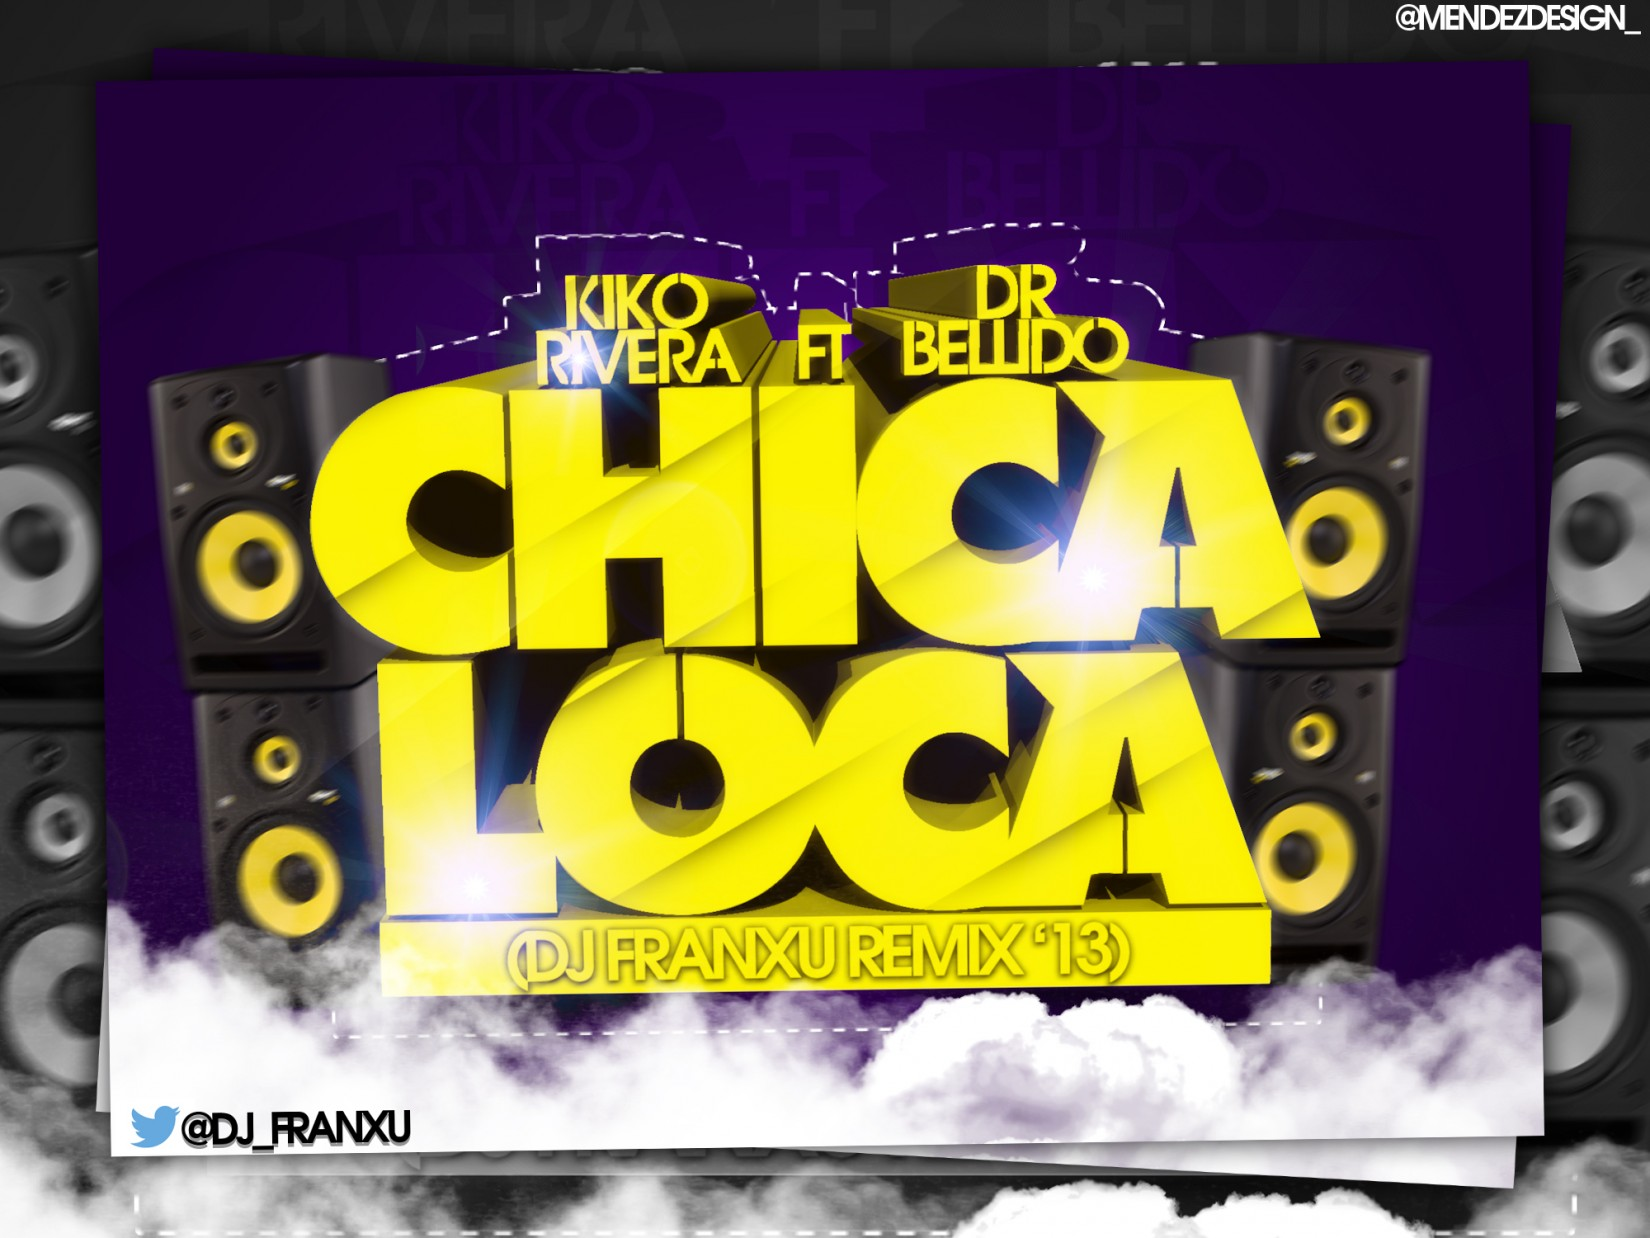 What is CHICA LOCA font?